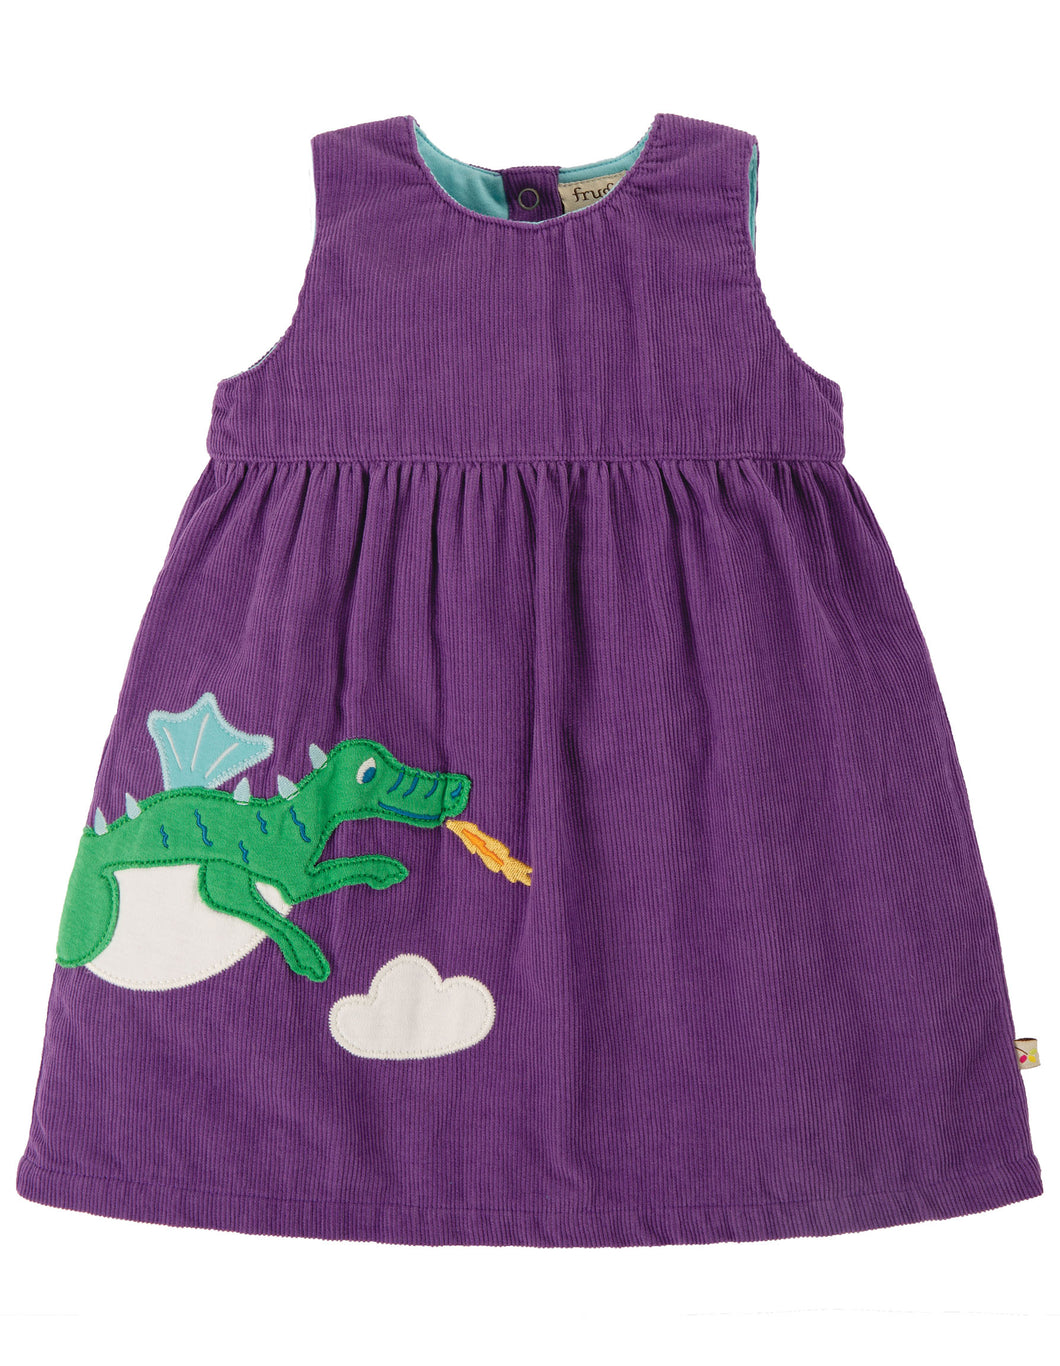 Frugi Lily Cord Dress No Sleeve - Thistle Dragon - New Release